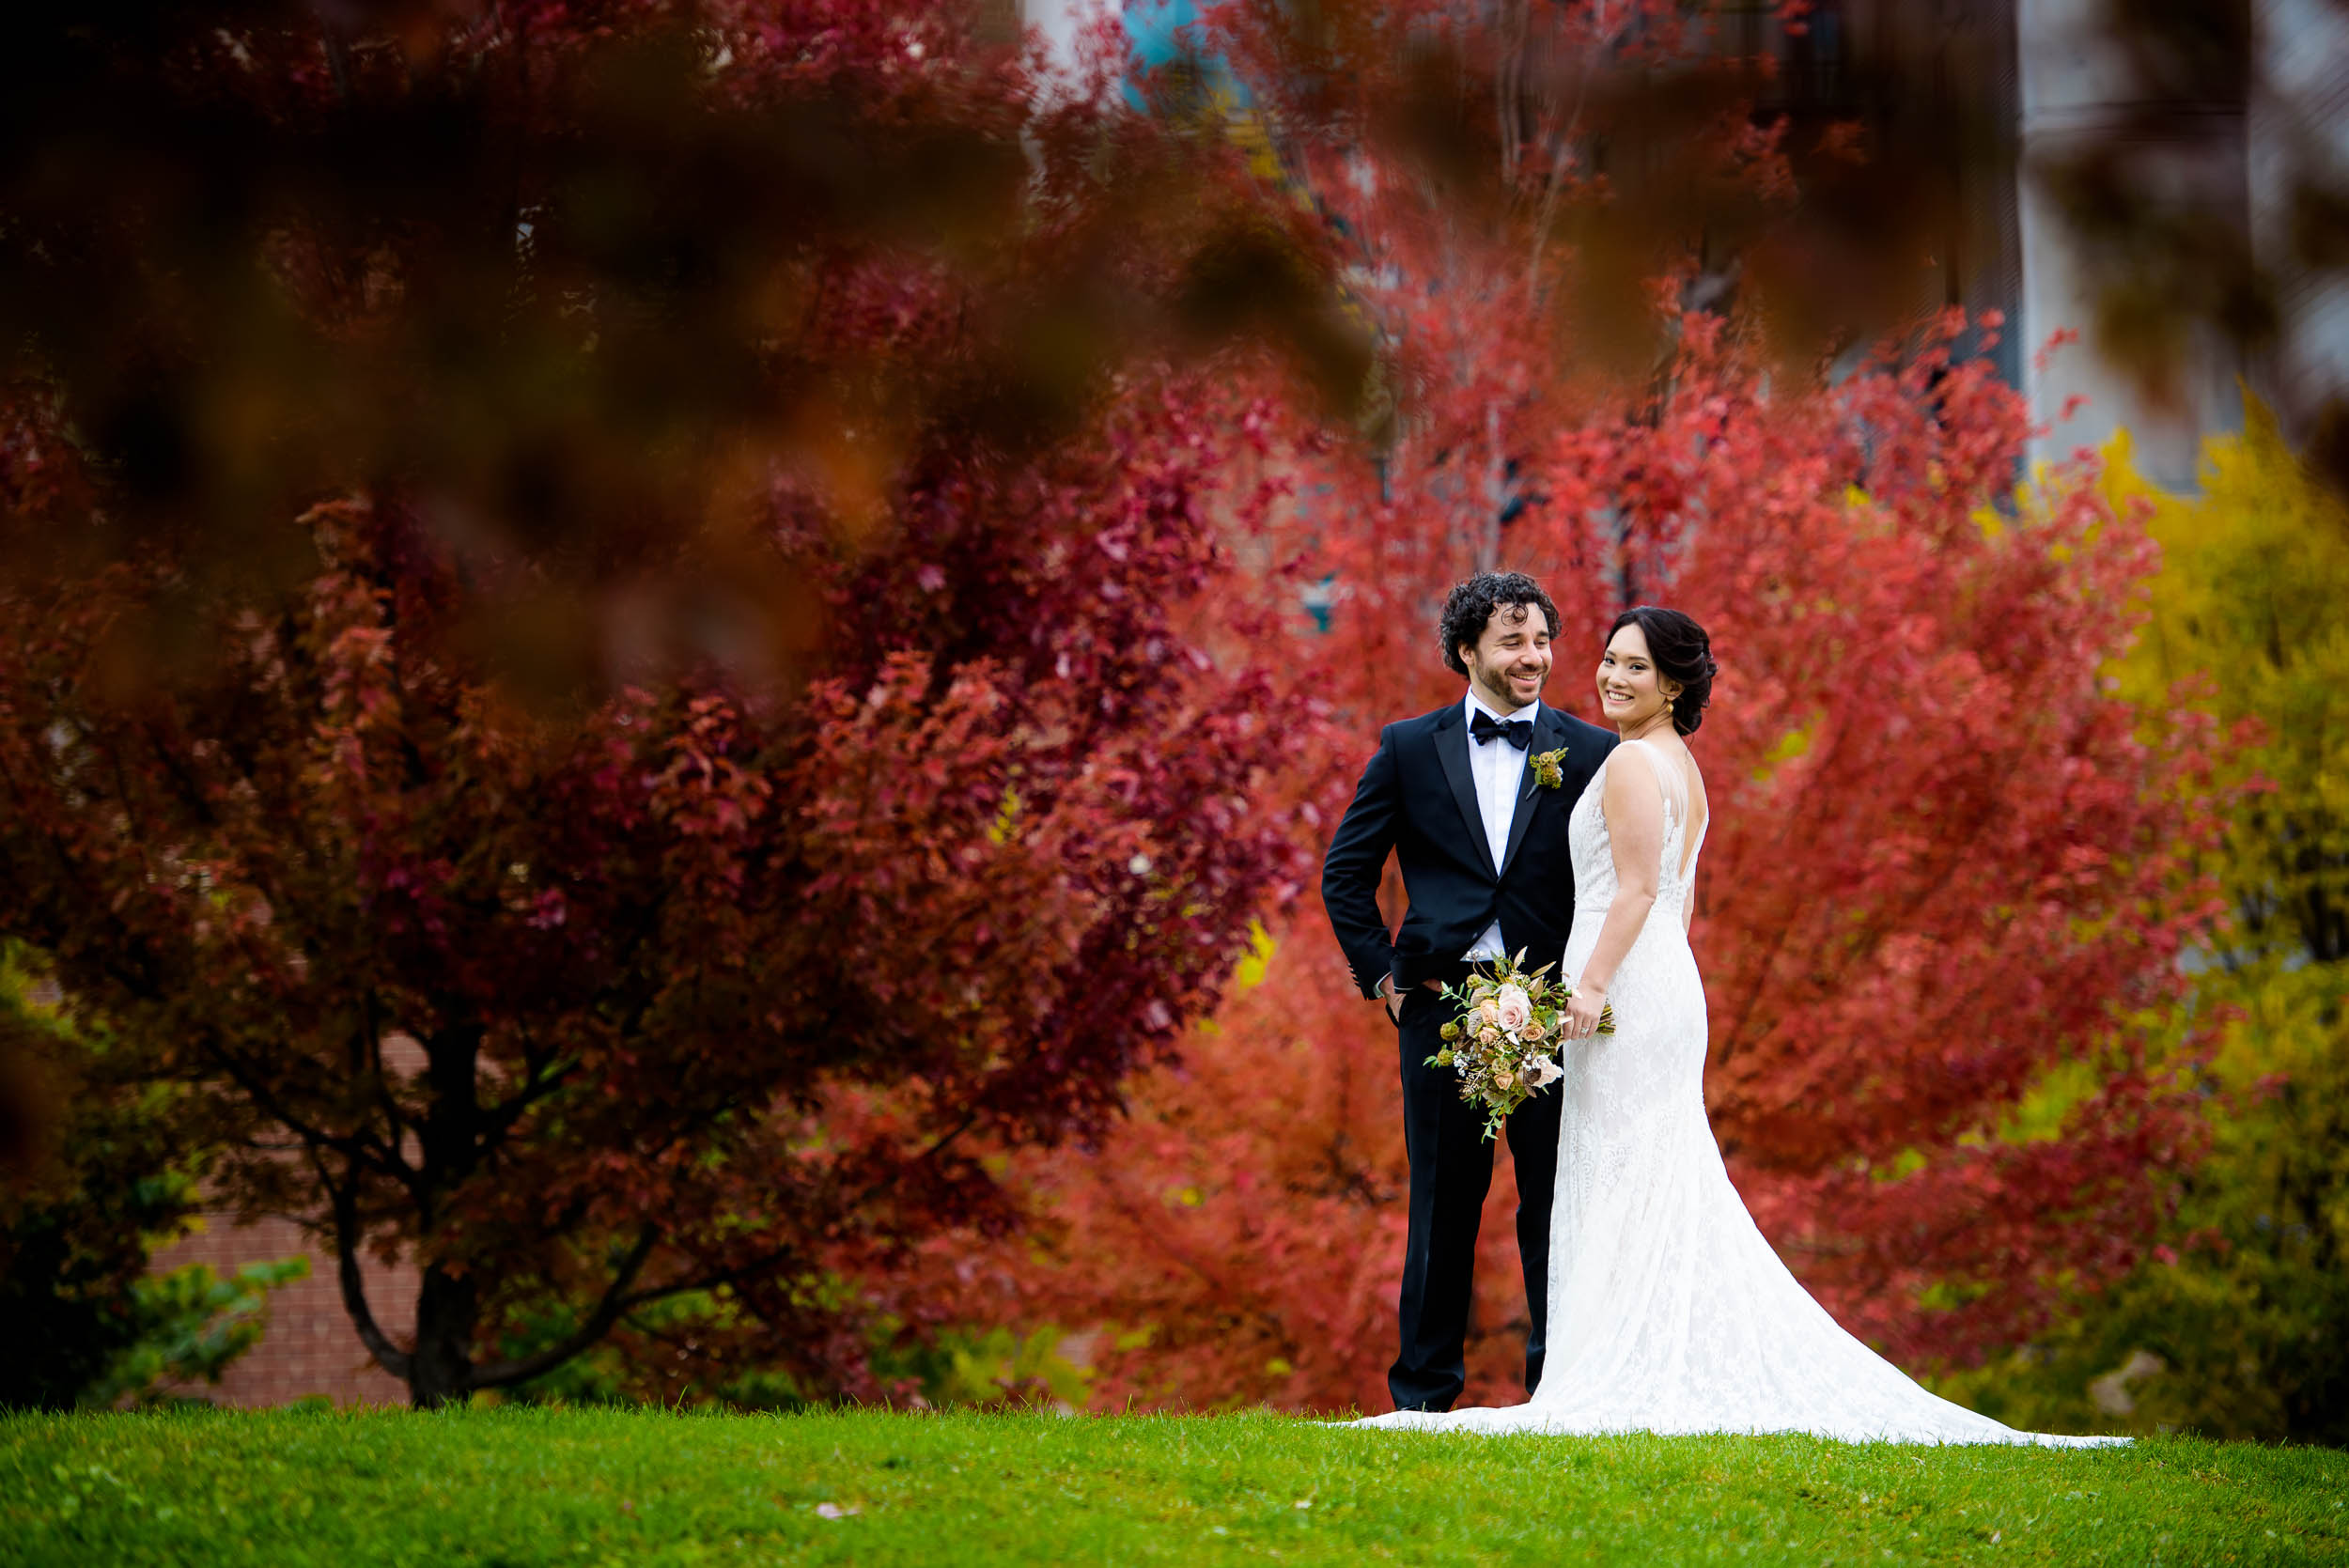 Fall wedding colors portrait at Mary Bartelme Park Chicago.